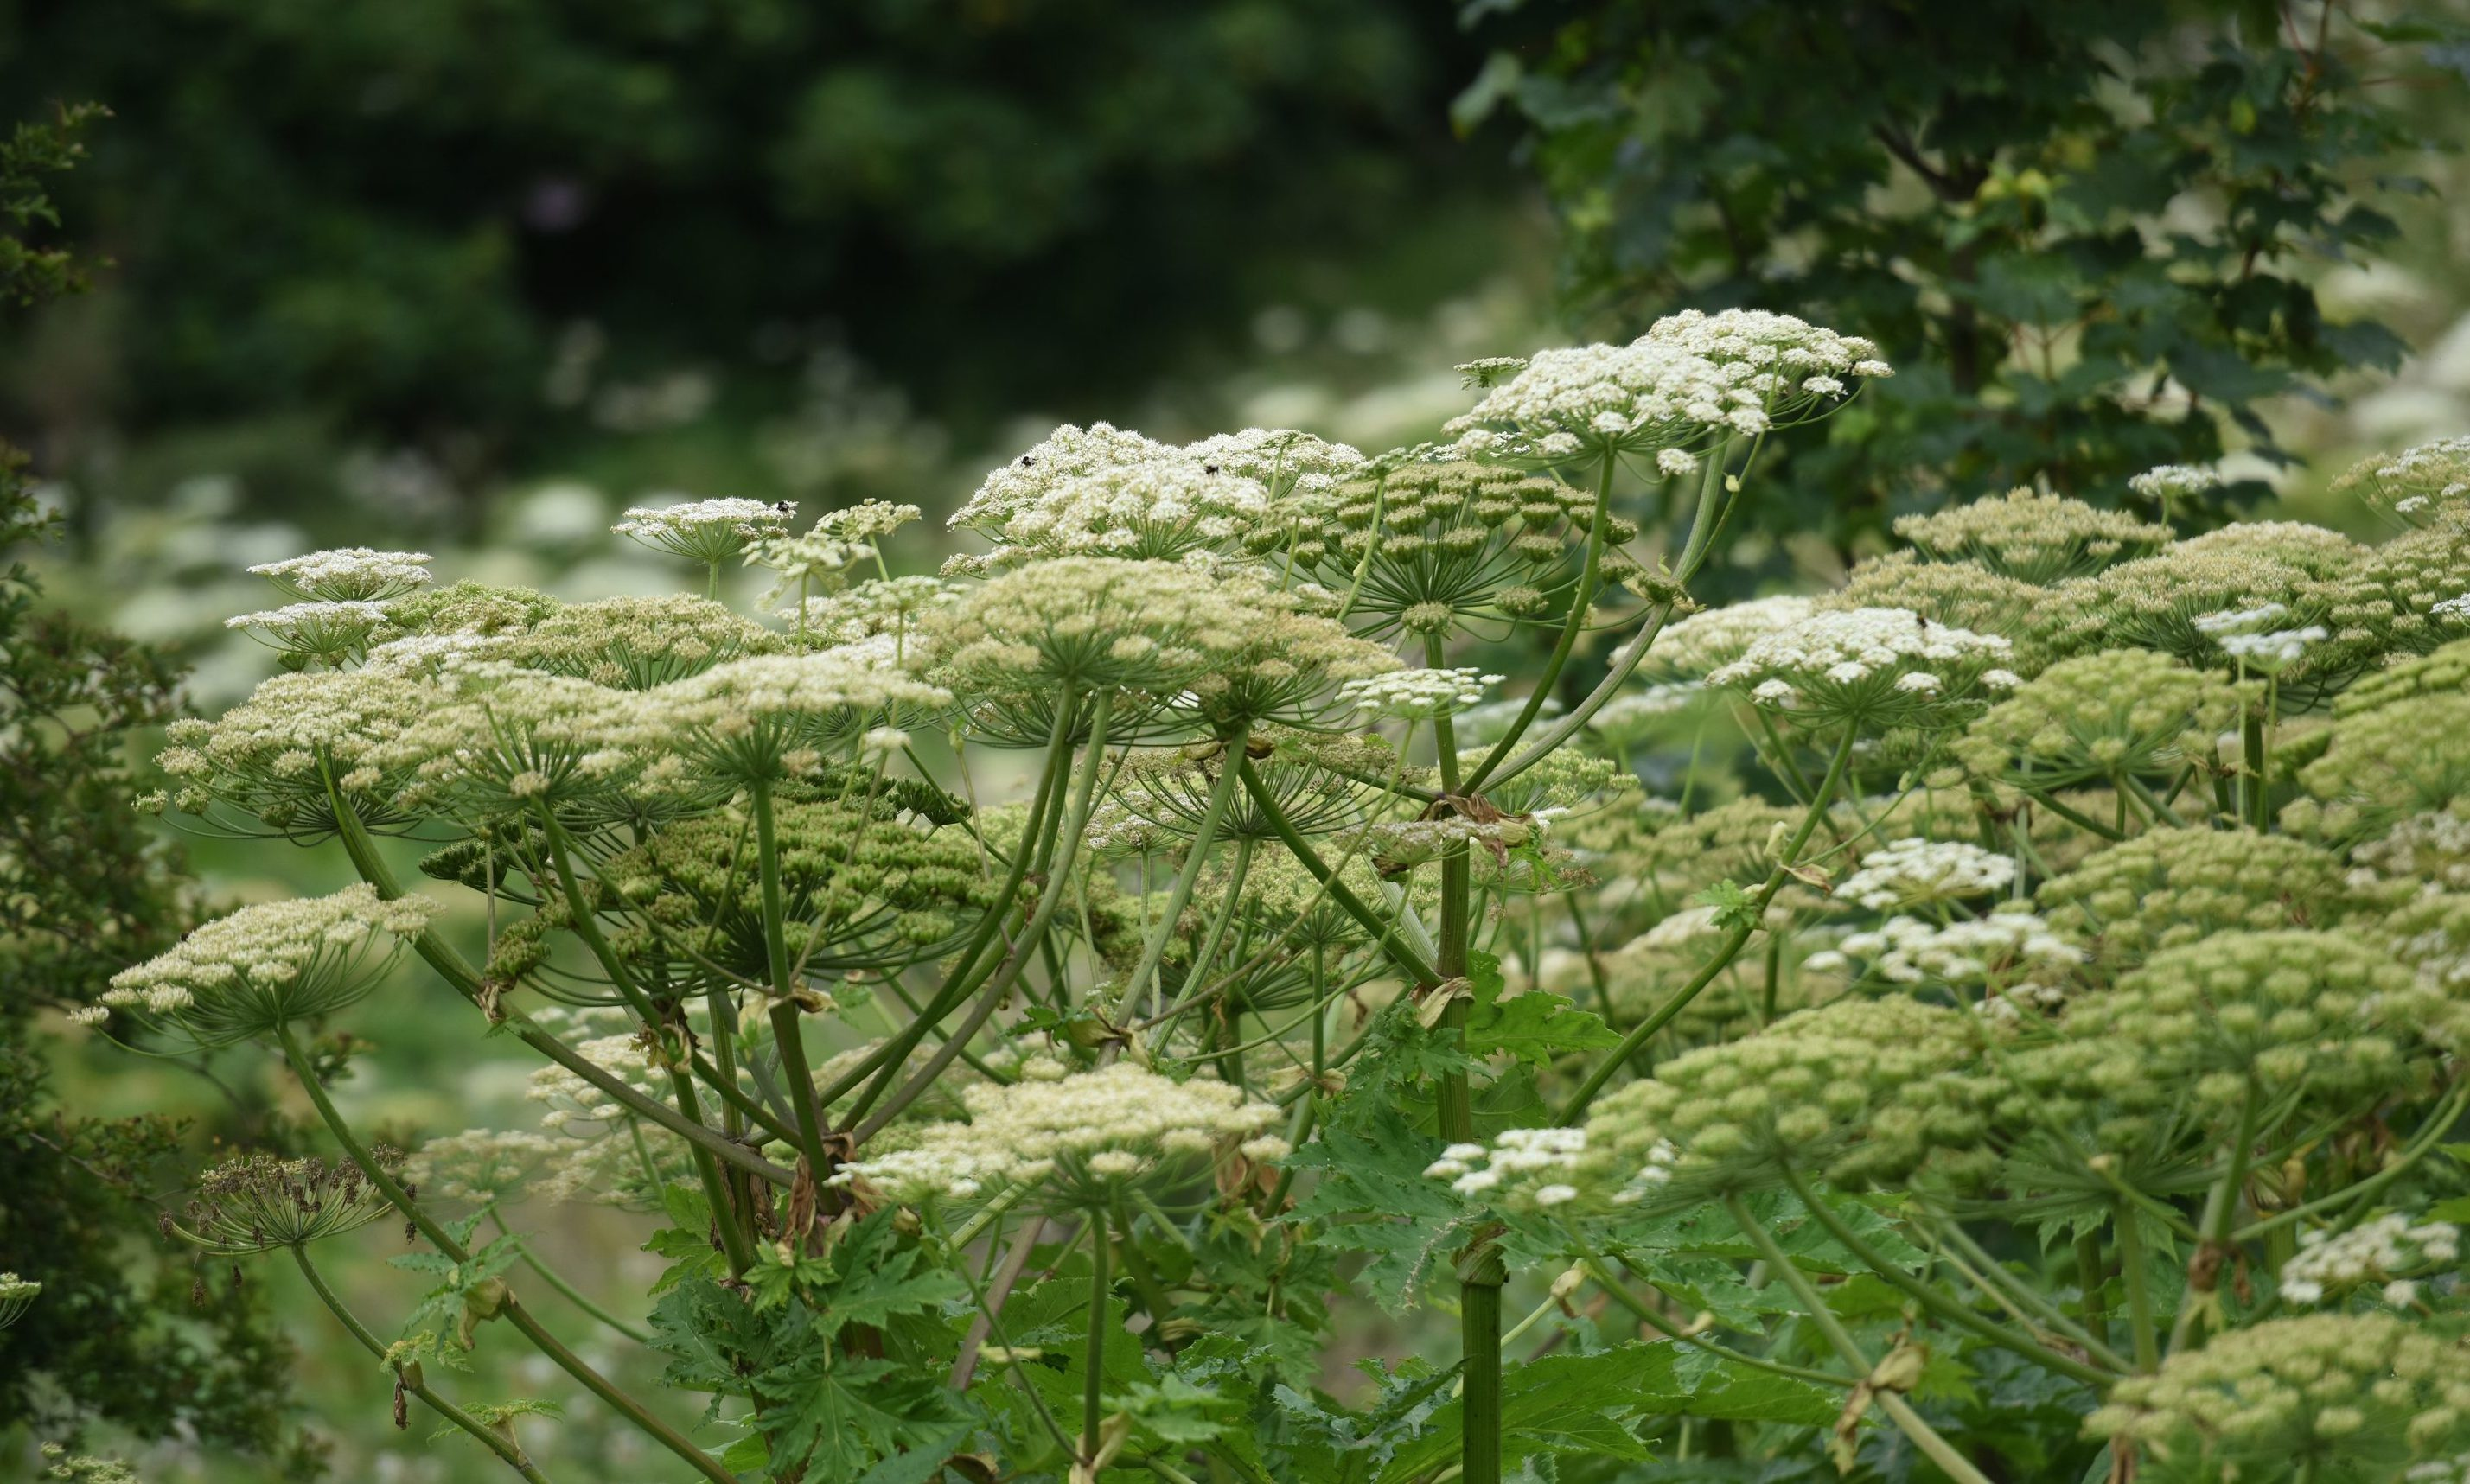 Poisonous Giant Hogweed plants are among a wave of invasive species said to be growing at an alarming rate throughout the region.